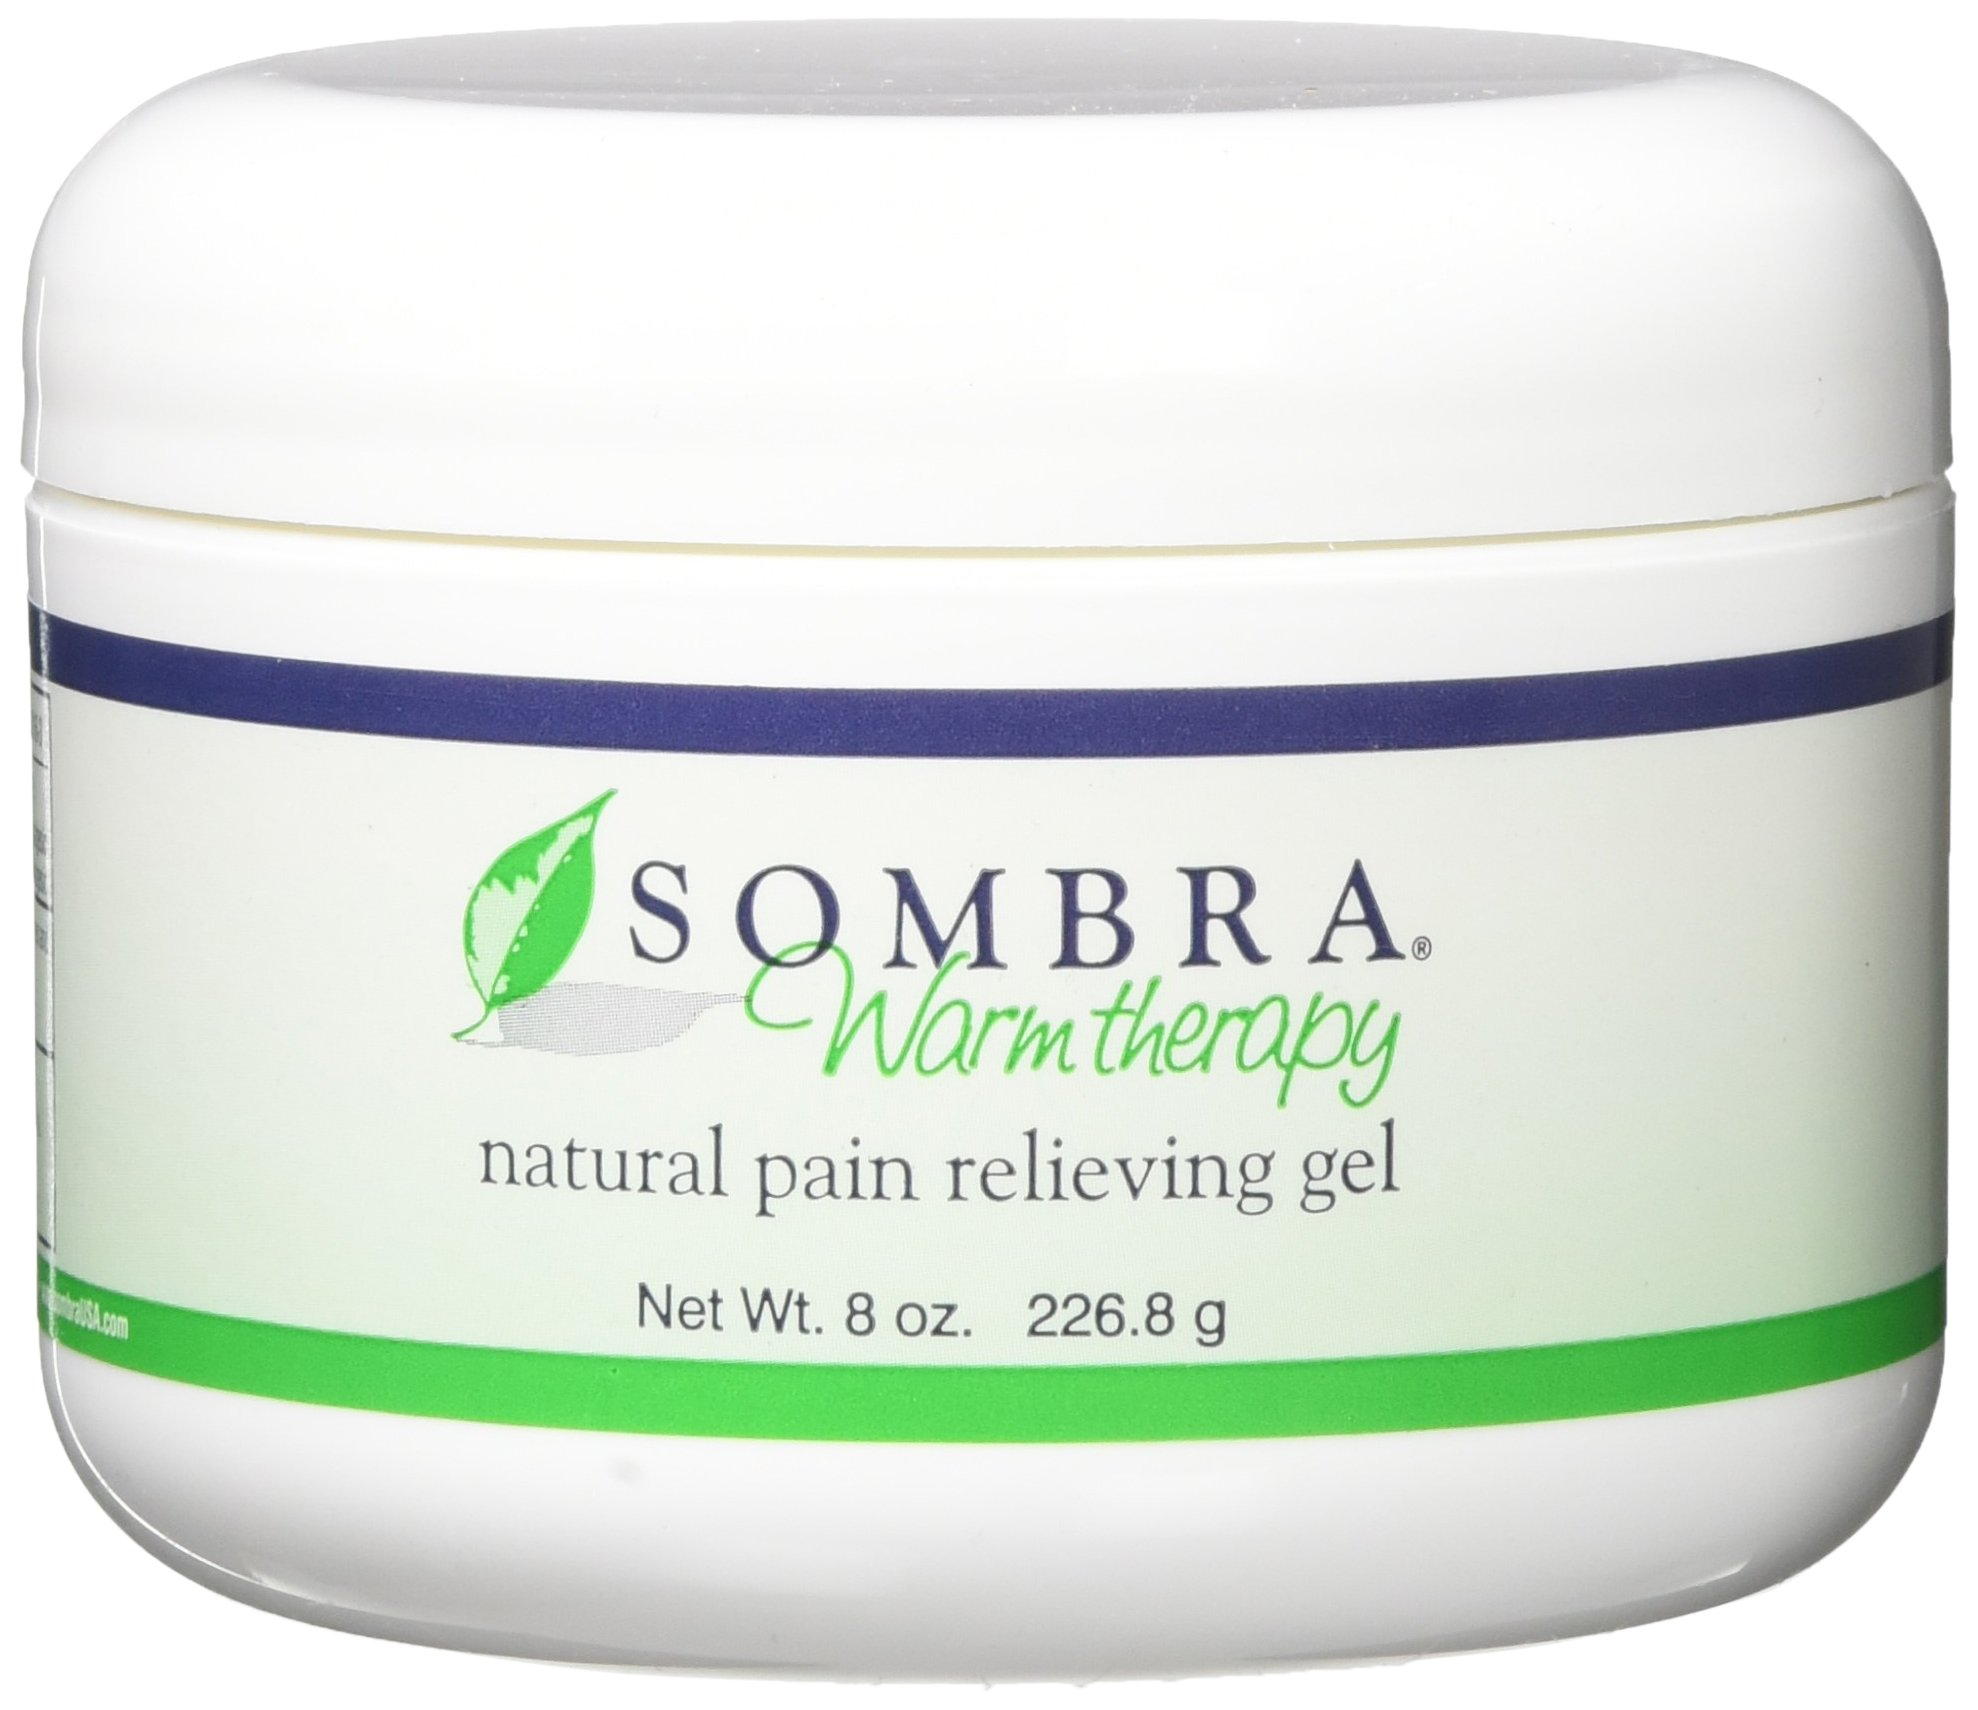 Sombra Warm Therapy Pain Relieving Gel, 8 Ounce, 2 Count